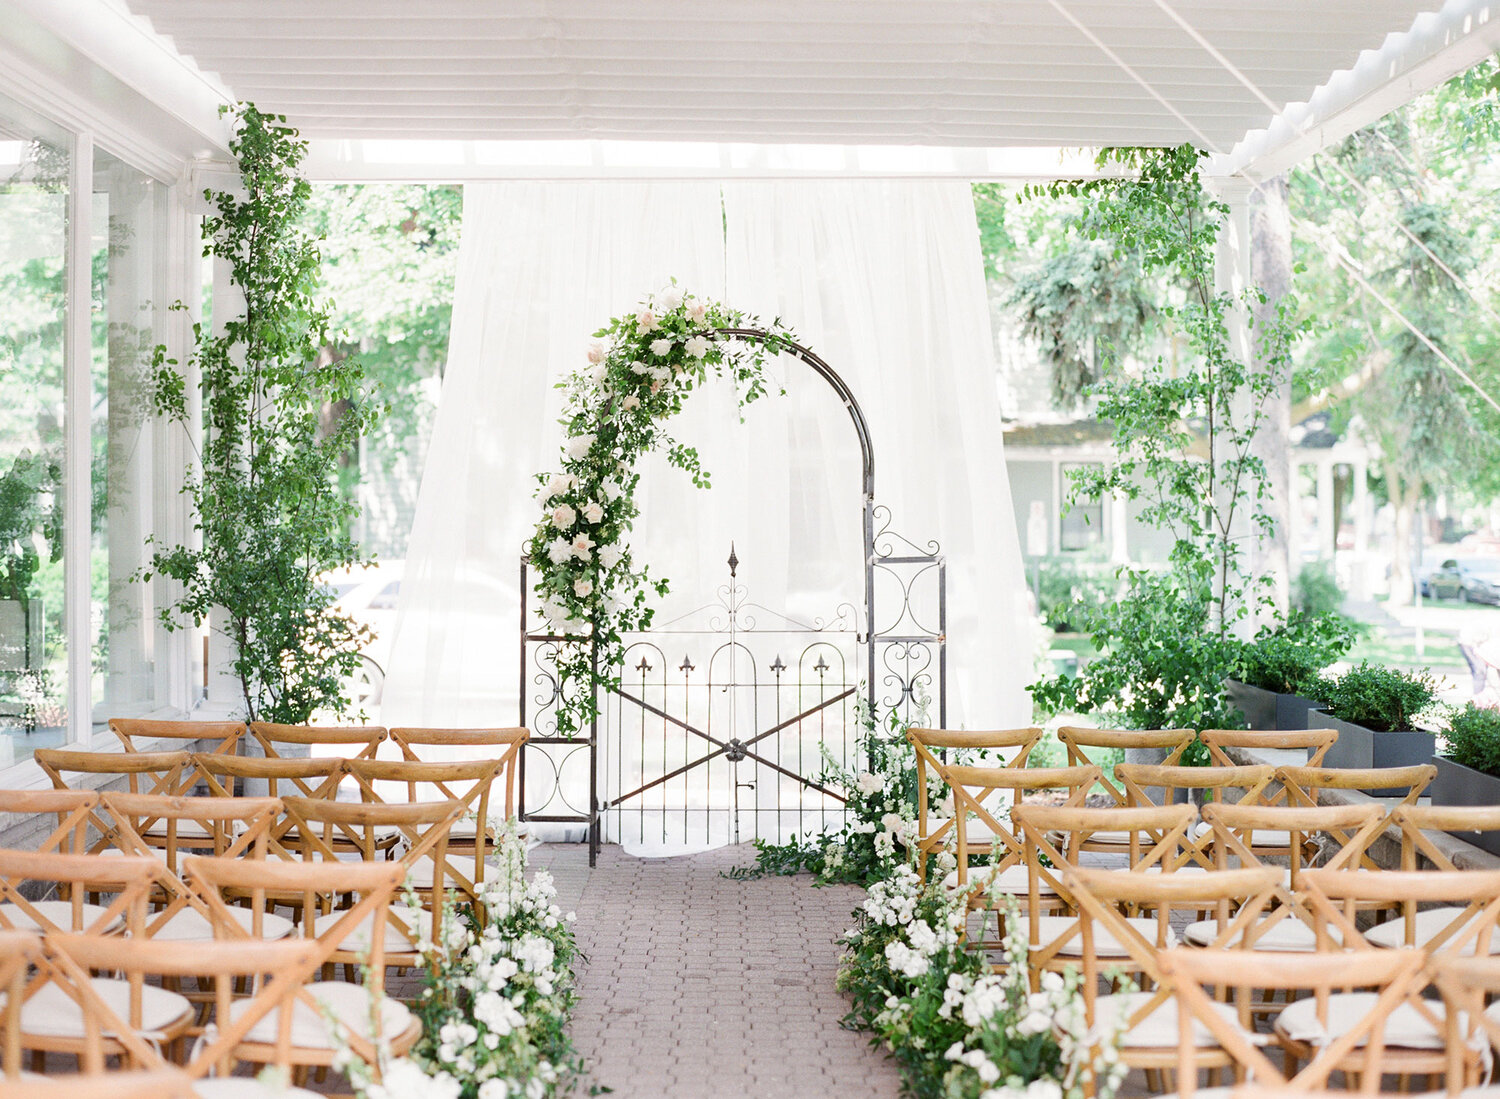 the-gate-house-niagara-on-the-lake-weddings-vineyard-bride-swish-list-photo-1.jpeg